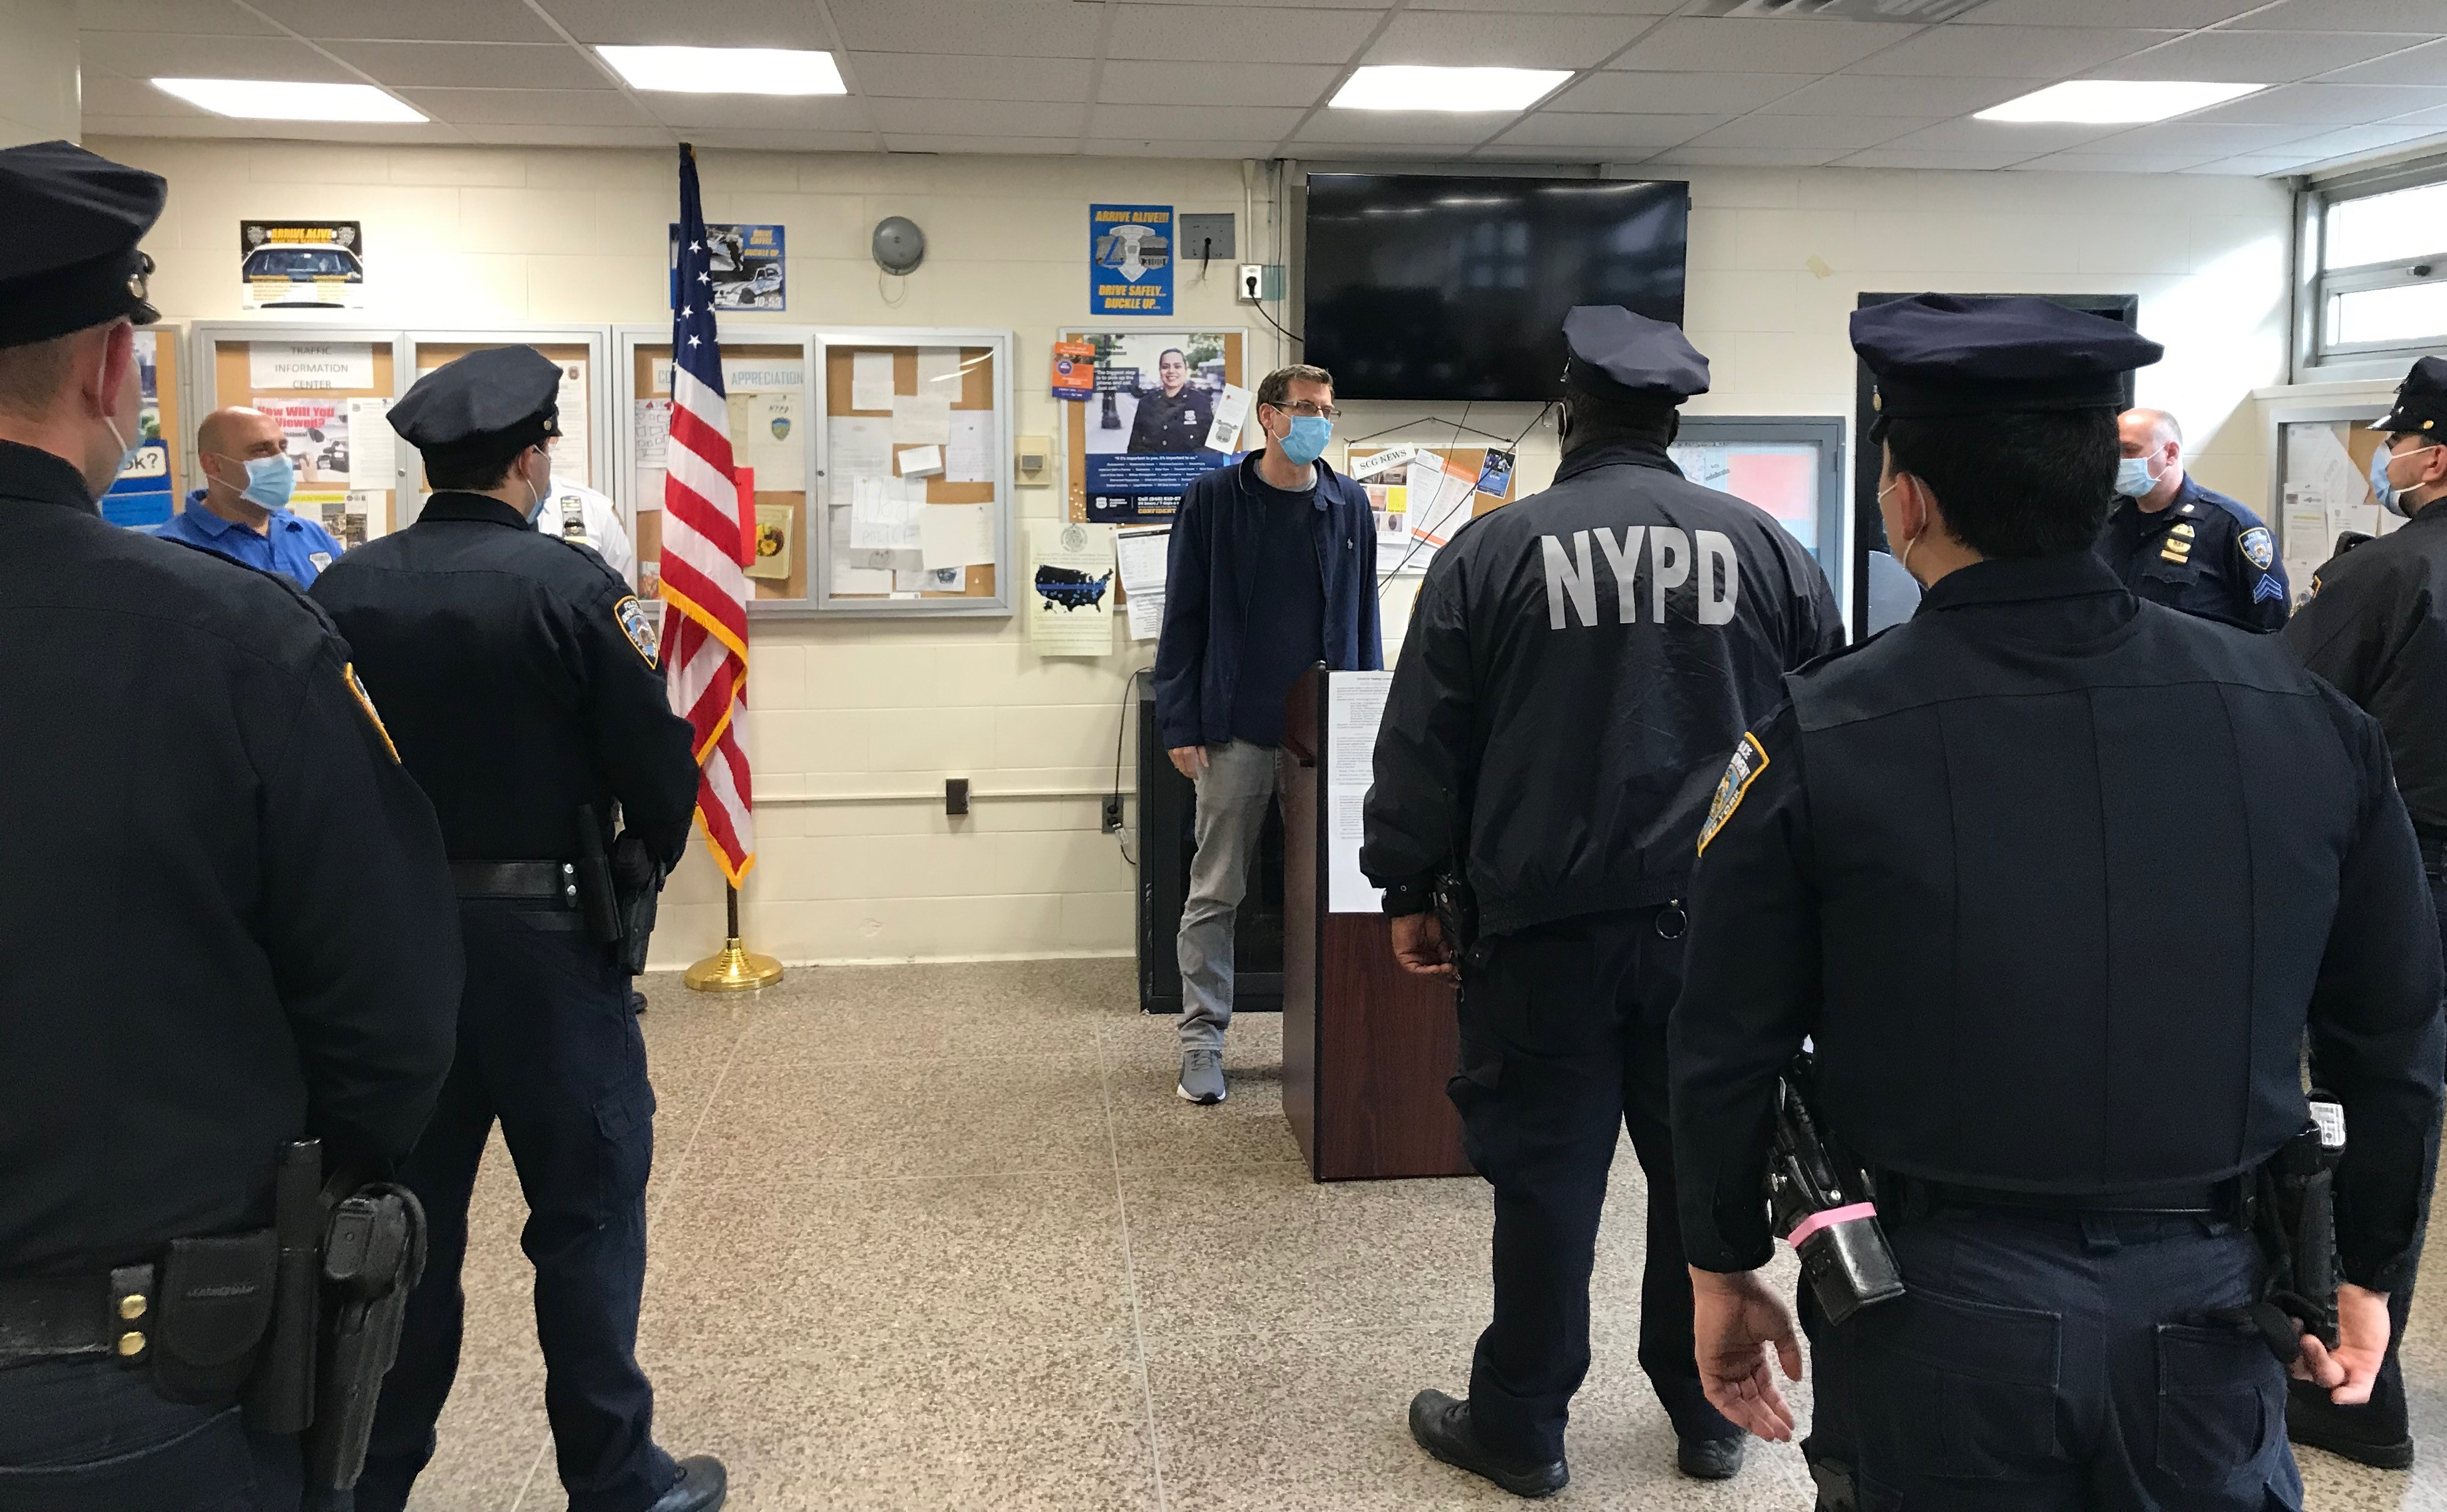 On April 30, 2020, Assemblyman Braunstein visited the 111th Precinct.